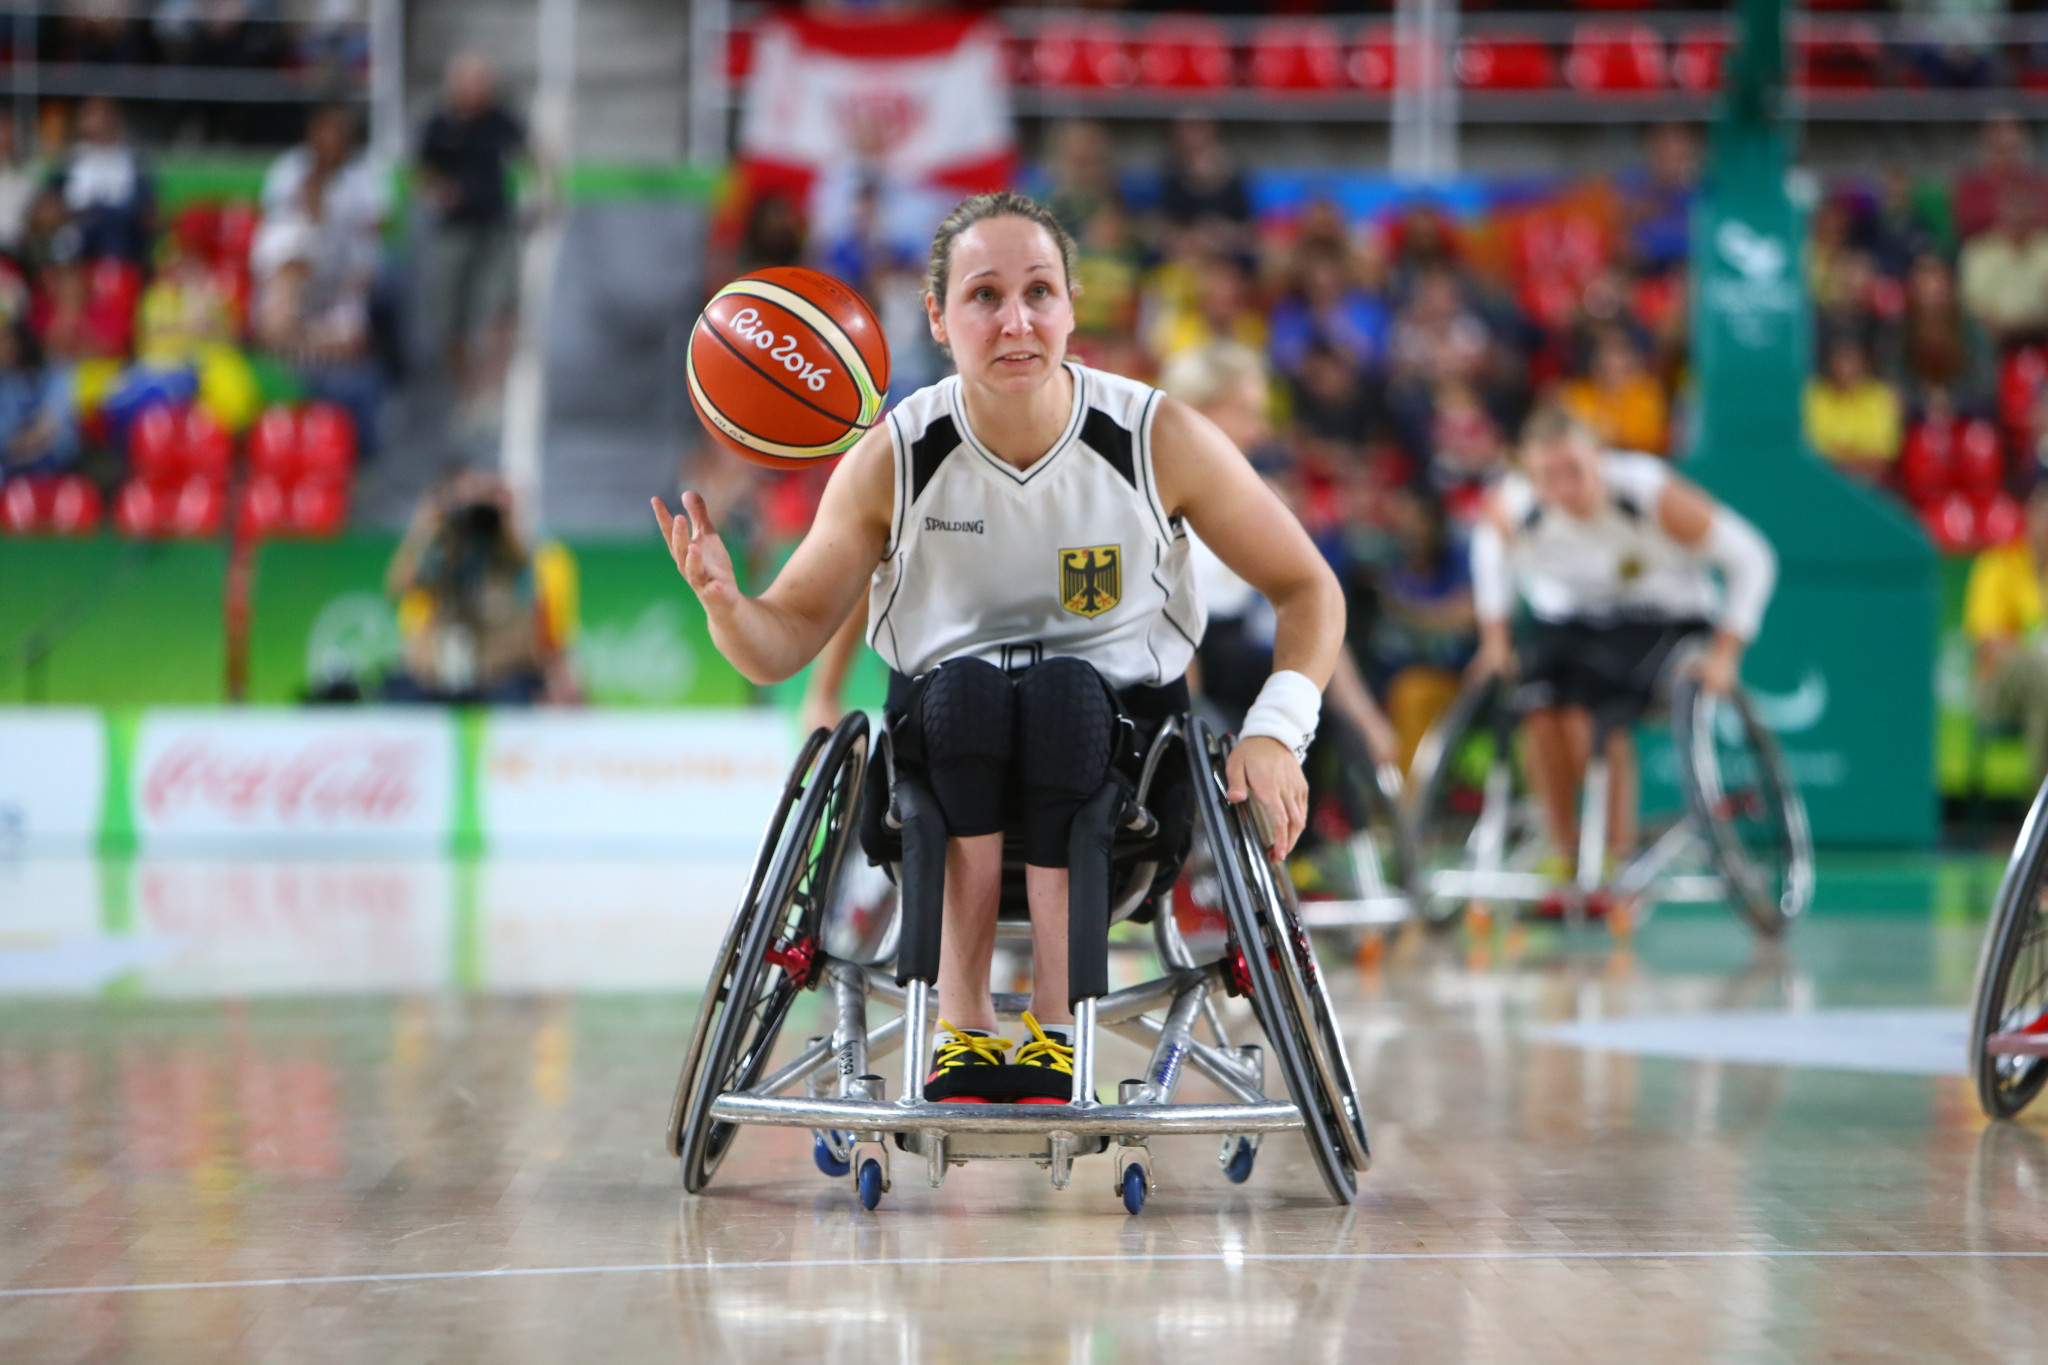 Annika Zeyen won Paralympic gold in wheelchair basketball at London 2012 and has also competed in athletics and cycling ©Getty Images